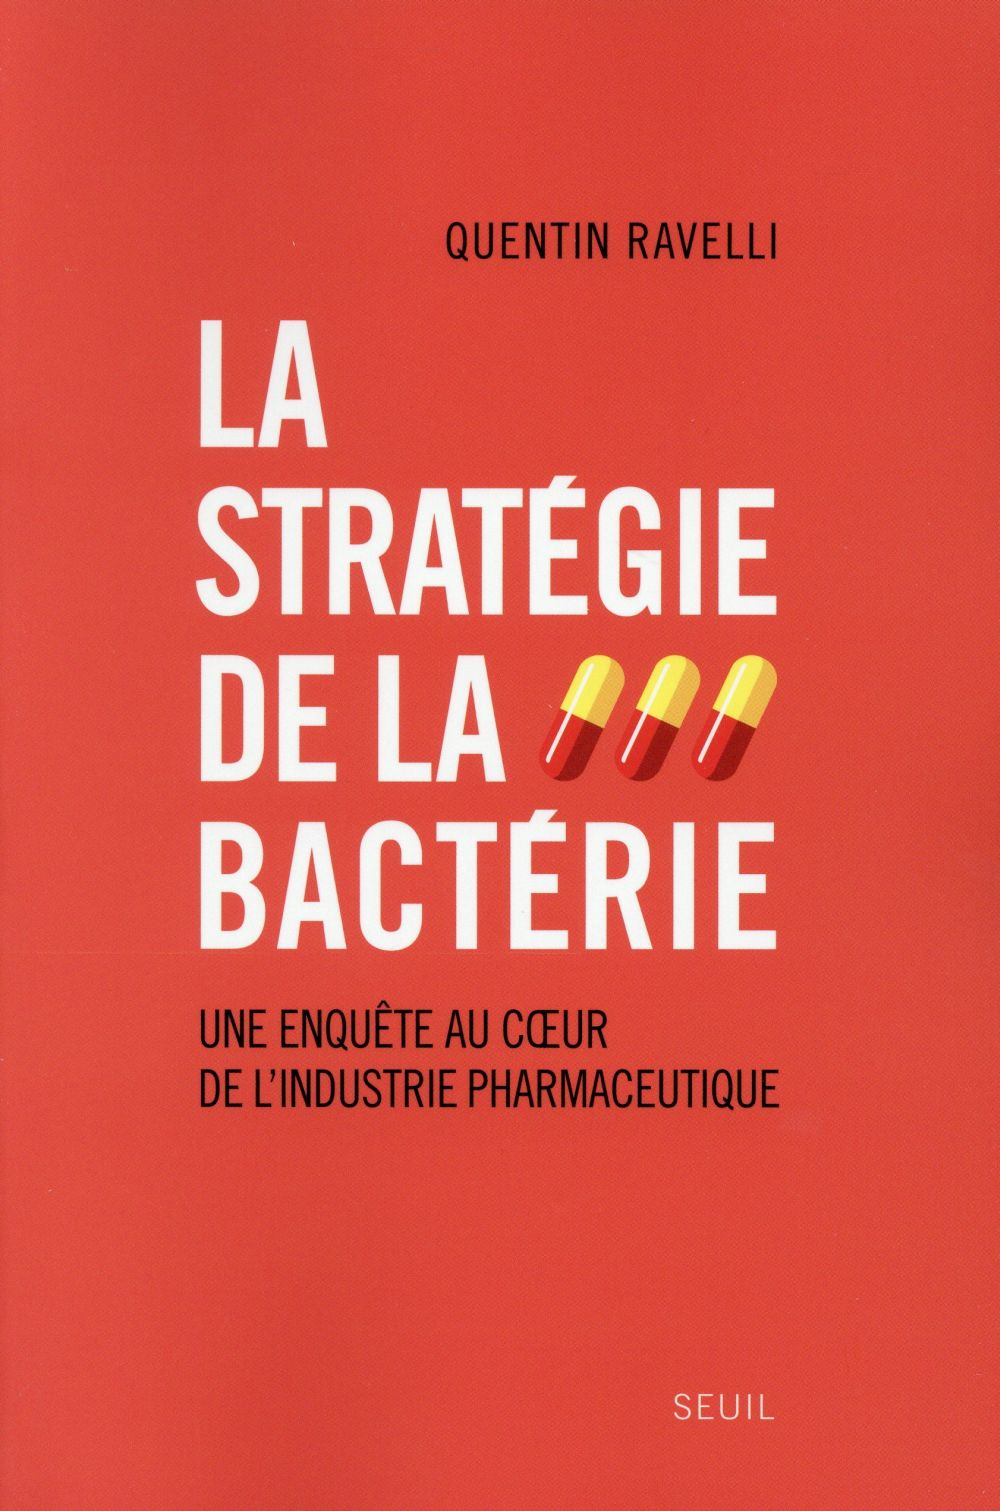 LA STRATEGIE DE LA BACTERIE. UNE ENQUETE AU COEUR DE L'INDUSTRIE PHARMACEUTIQUE